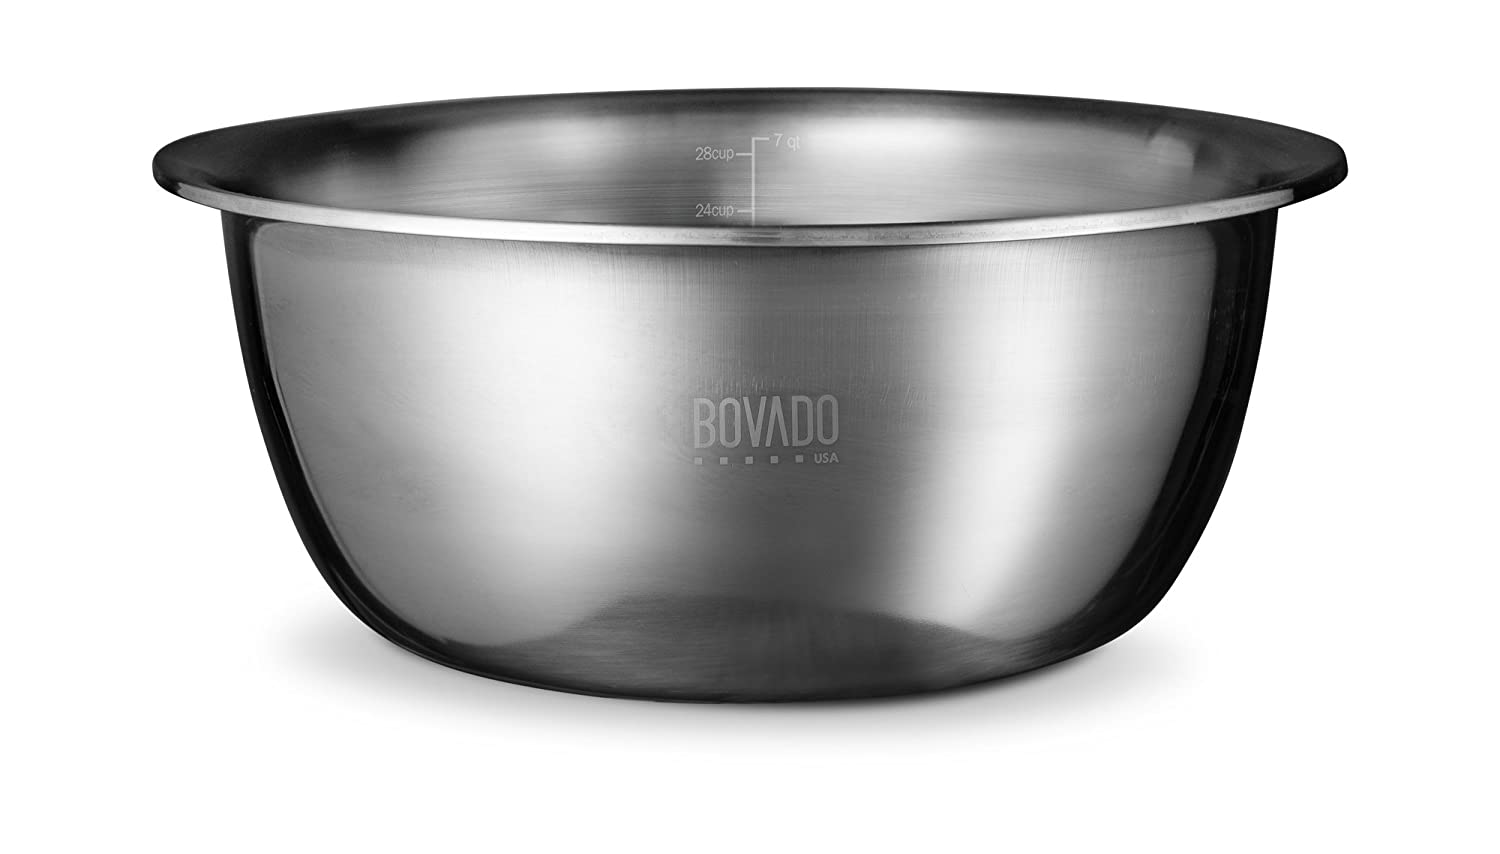 New Design Stainless Steel Mixing Bowl - 7.5qt - Flat Bottom Extra Wide Non Slip Base, Retains Temperature, Dishwasher Safe - By Bovado USA